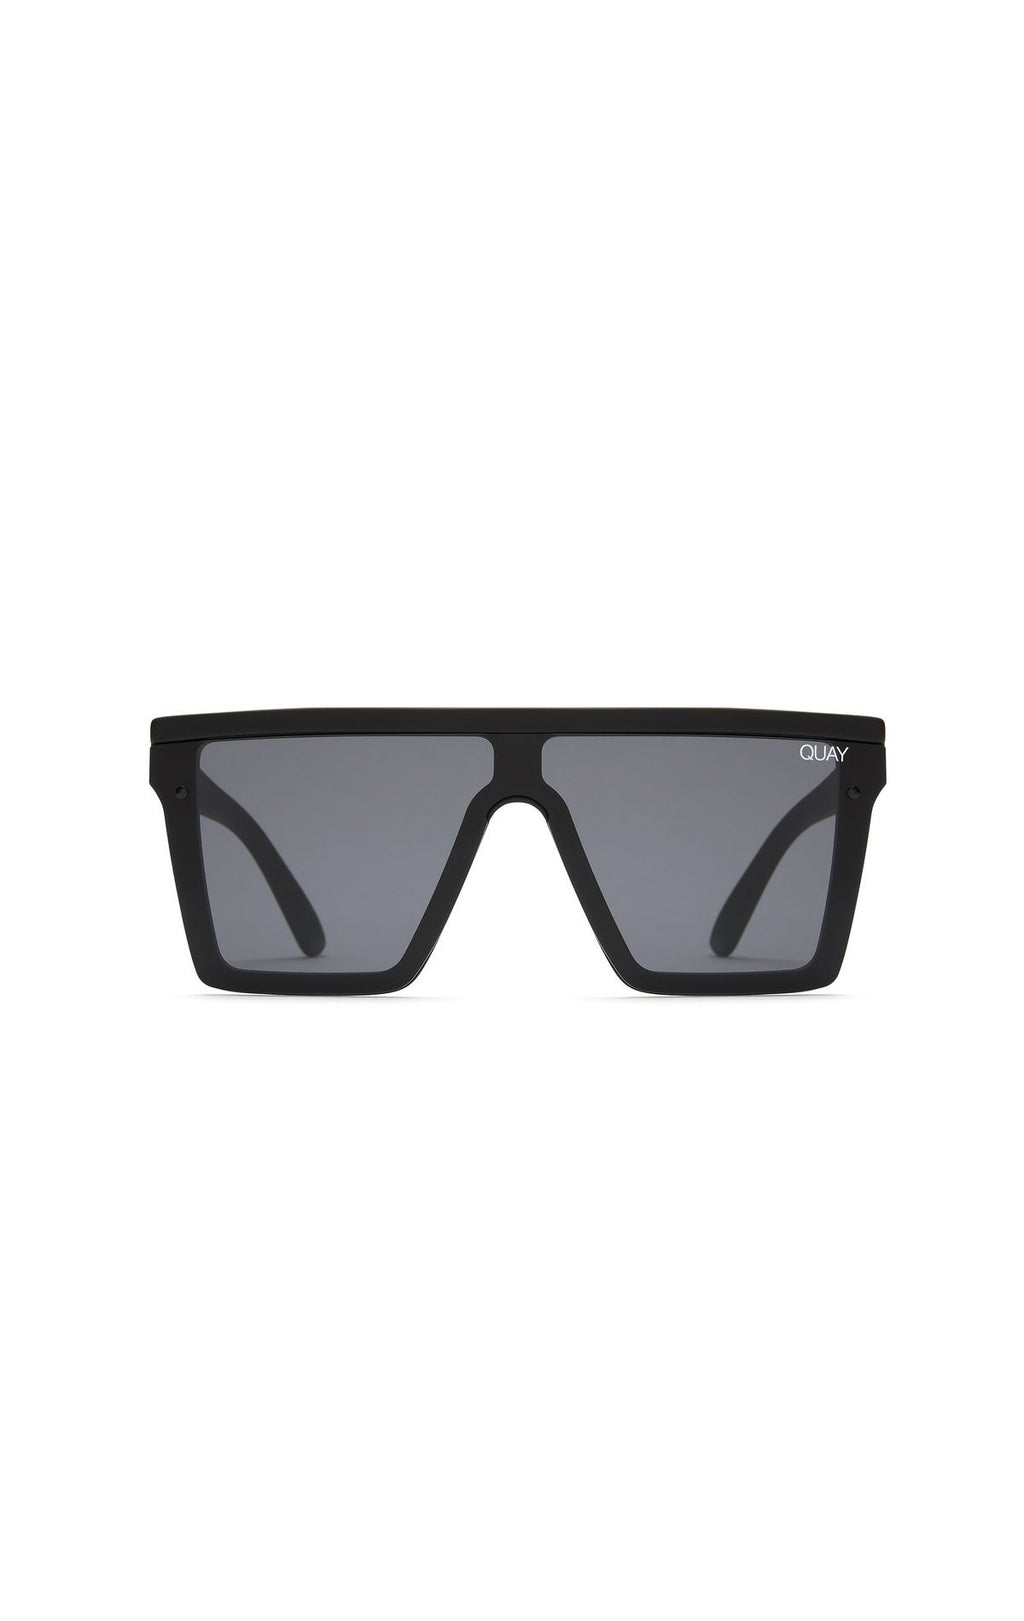 QUAY HINDSIGHT SUNGLASSES FRONT